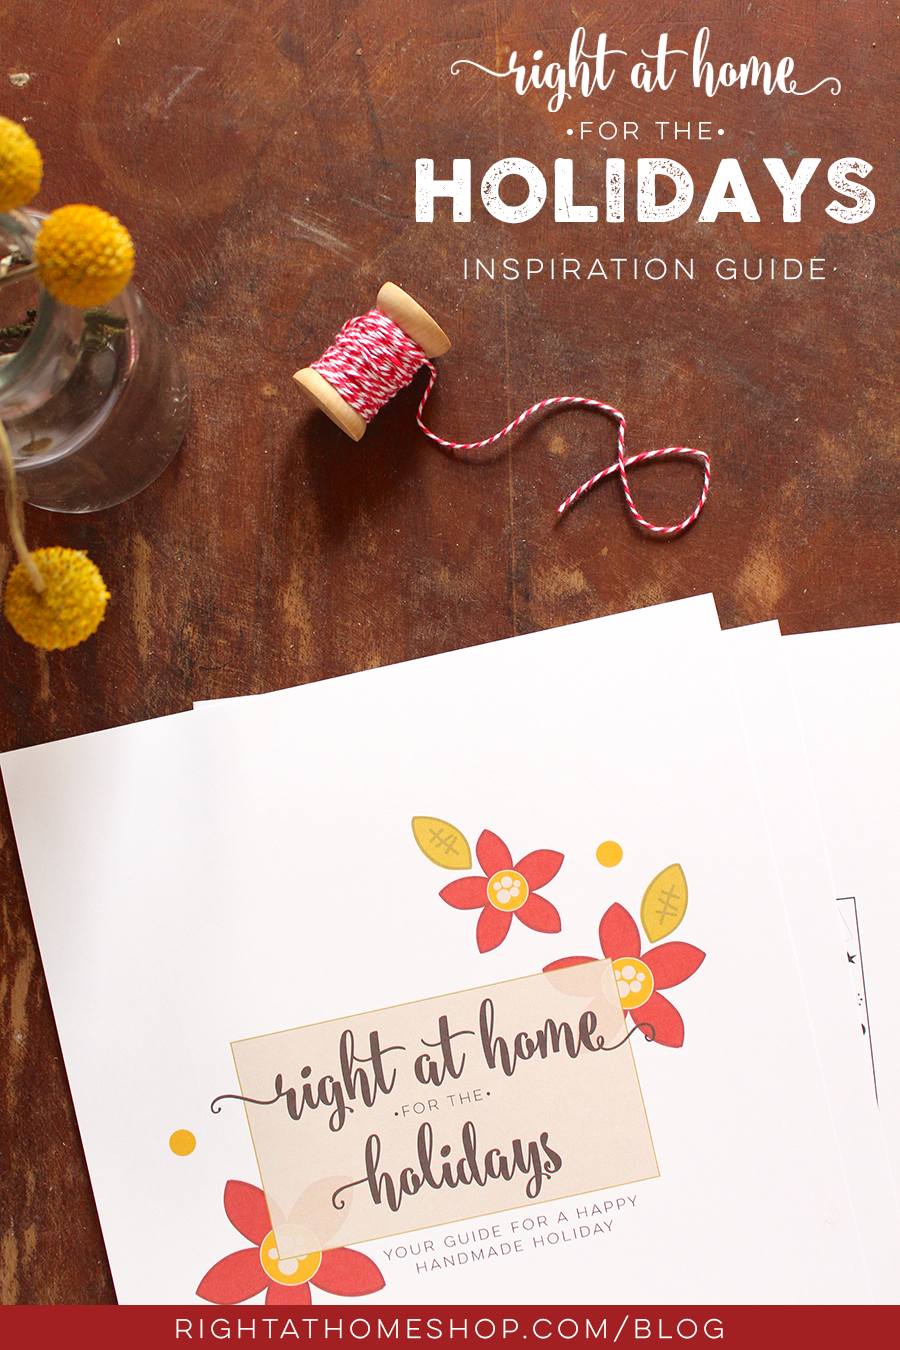 Looking for quick & easy holiday crafting ideas? I've got the perfect thing for you! // Right at Home for the Holidays Inspiration Guide Ebook - Right at Home Shop